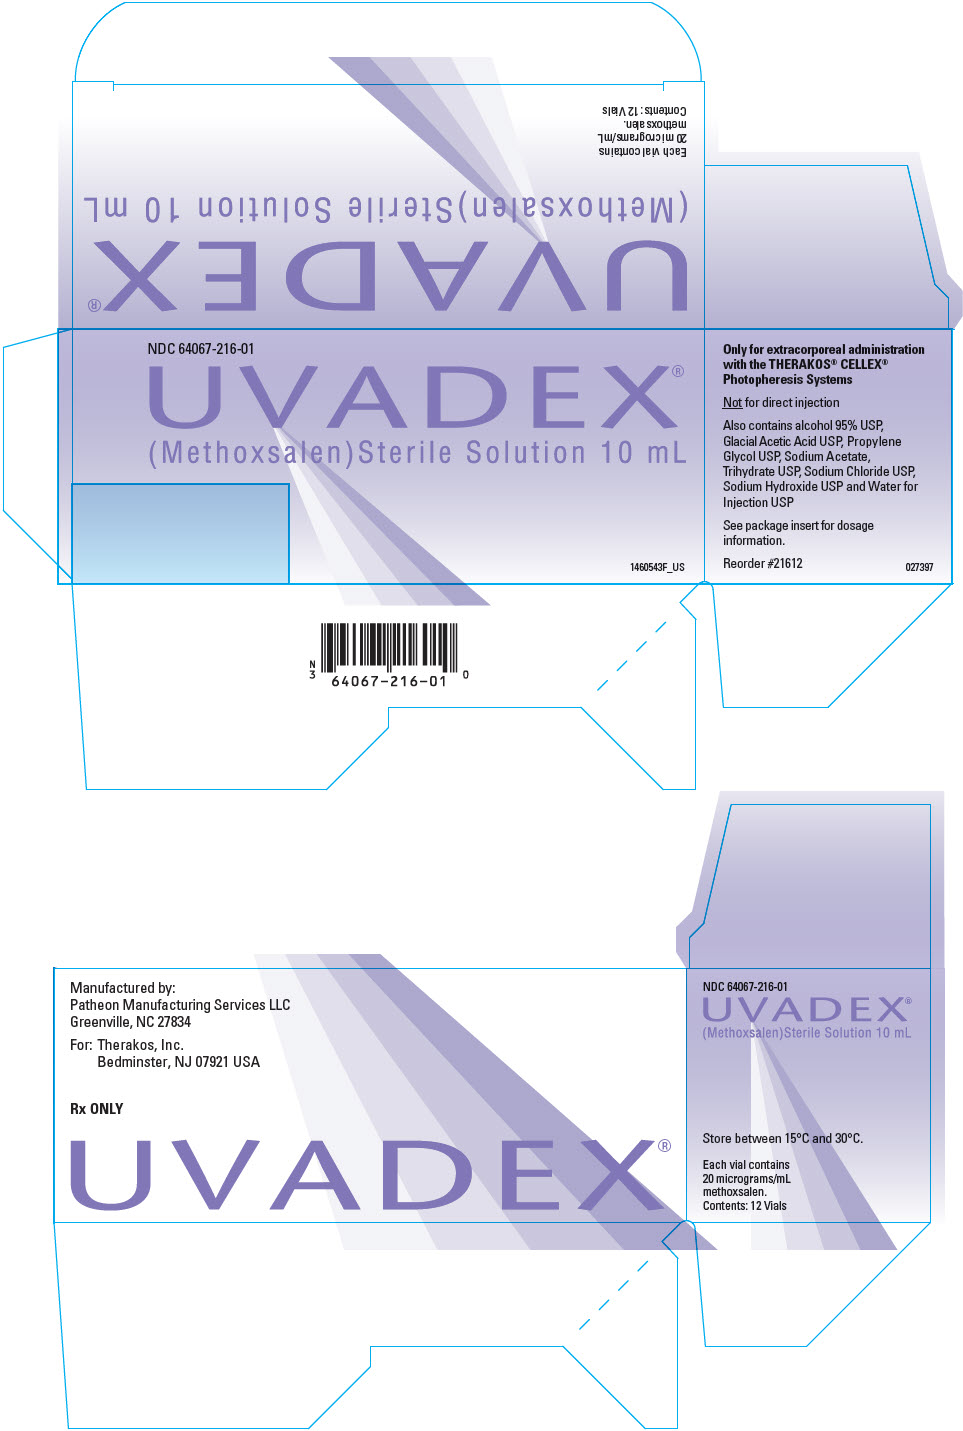 Prevail Information, Side Effects, Warnings and Recalls